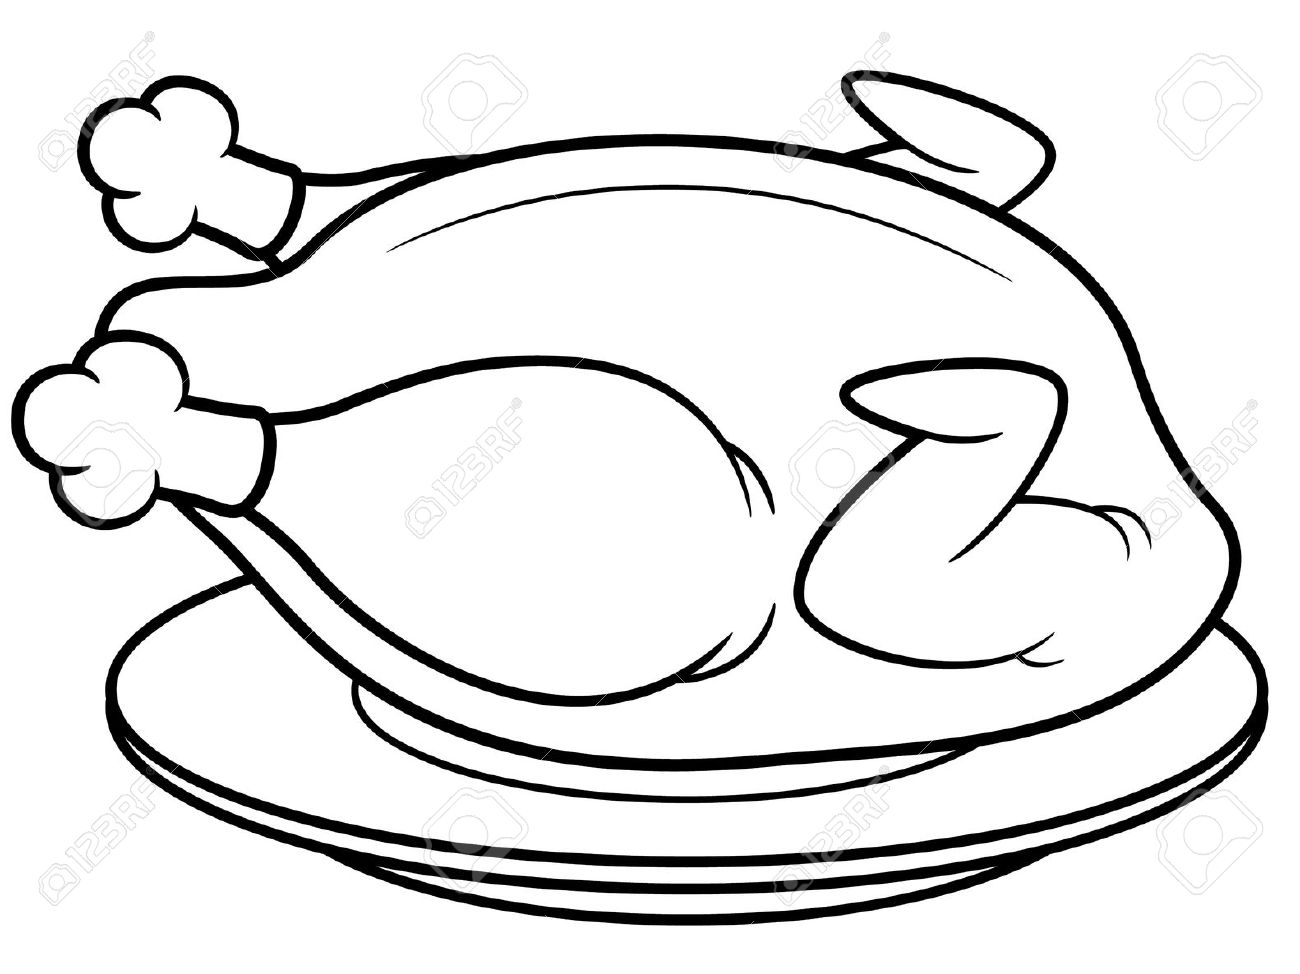 1300x974 Chicken Food Clipart Black And White